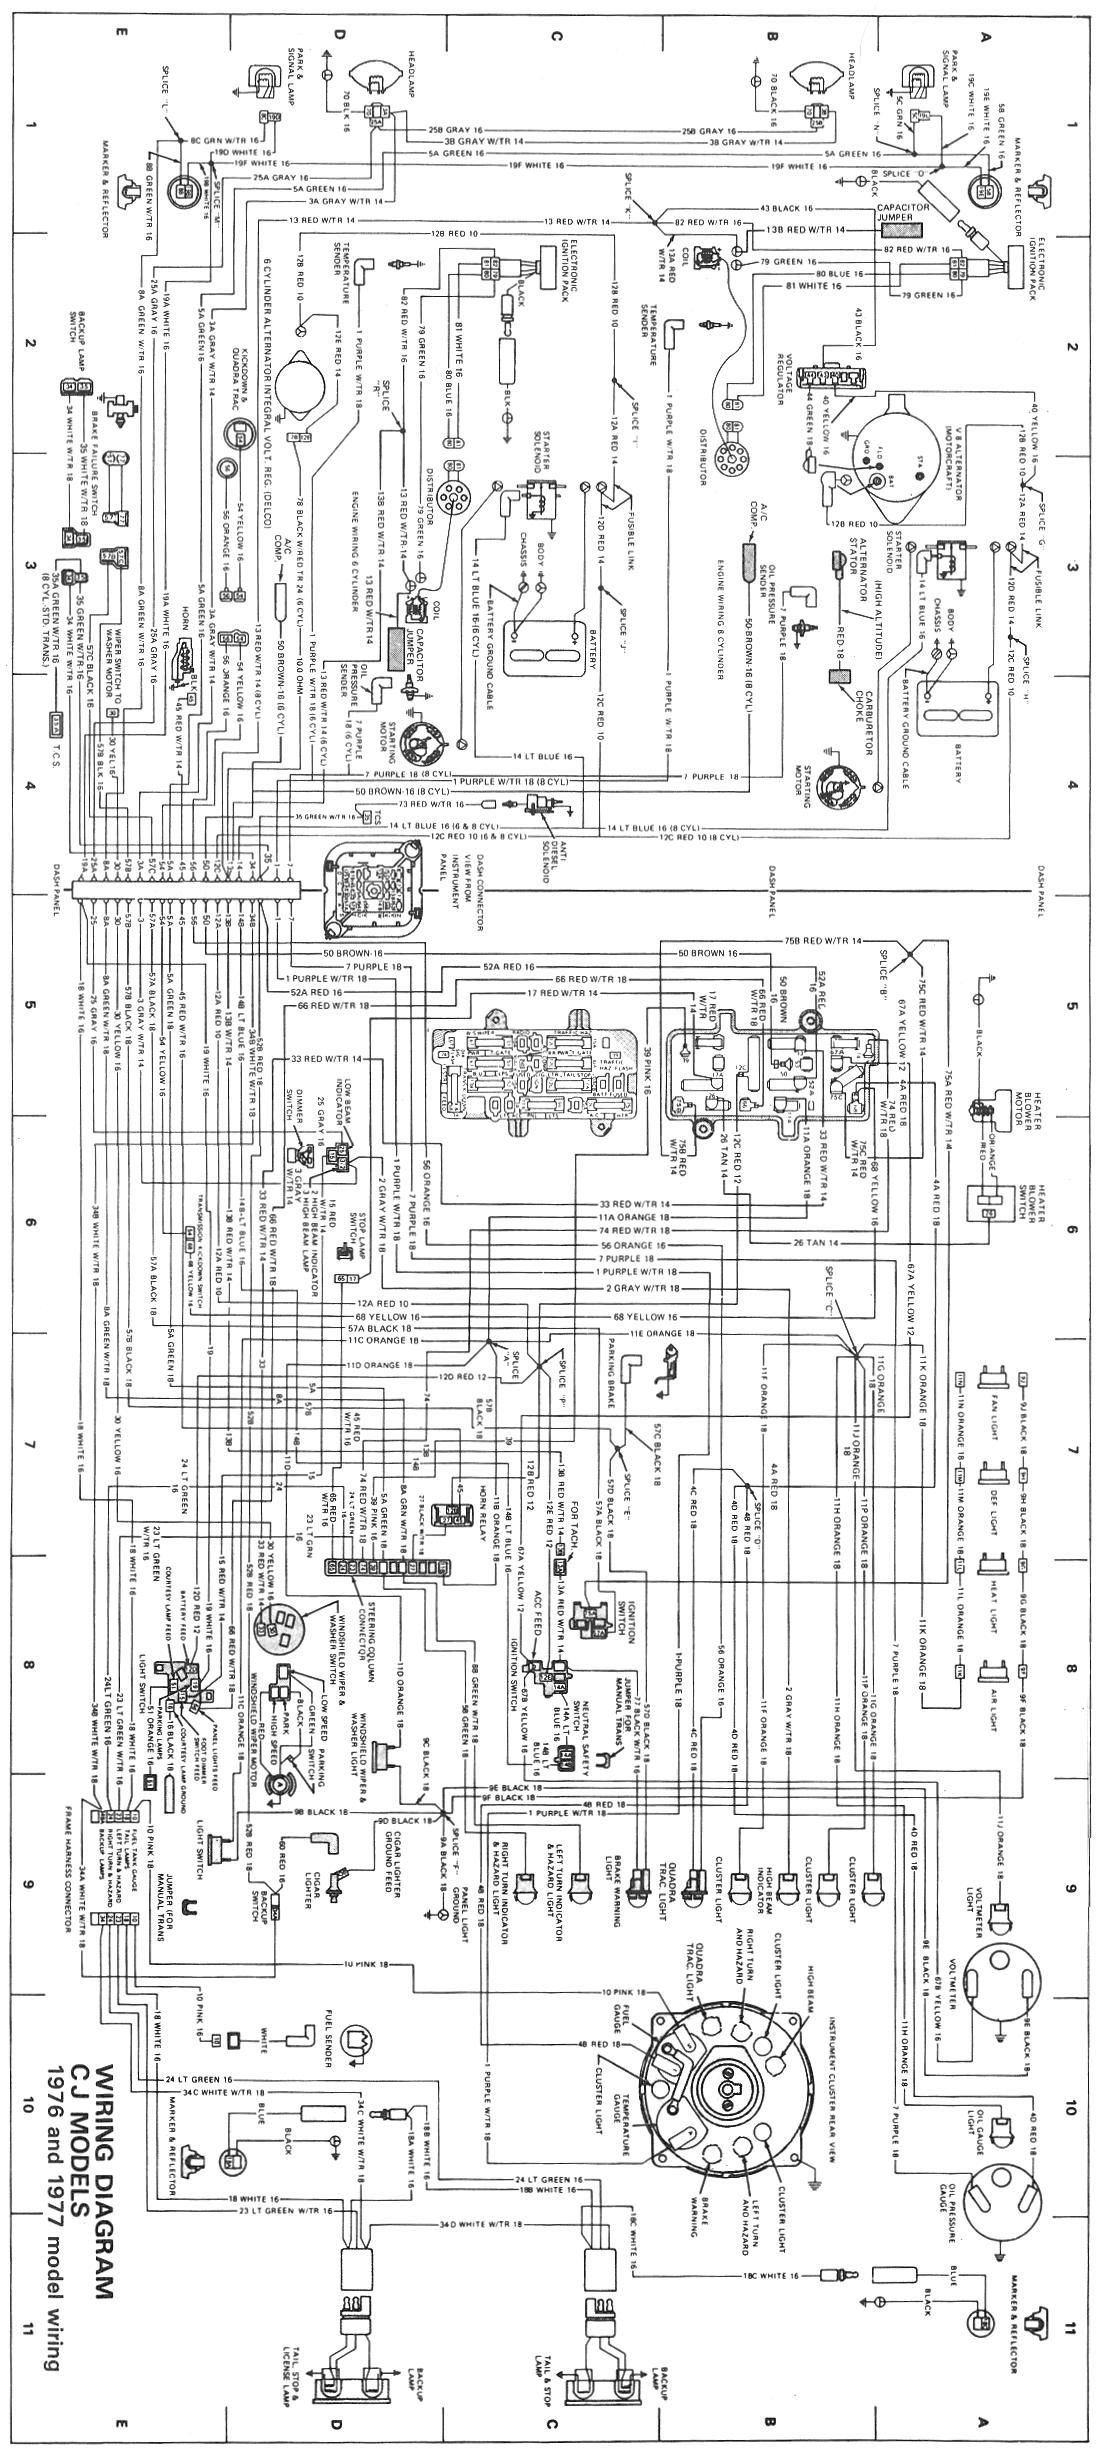 8d25ded6e3673519e155875e09844e5e cj wiring diagram 1976 1977 jpg 1,100�2,459 pixels 1976 jeep cj5 1974 jeep cj5 wiring diagram at virtualis.co